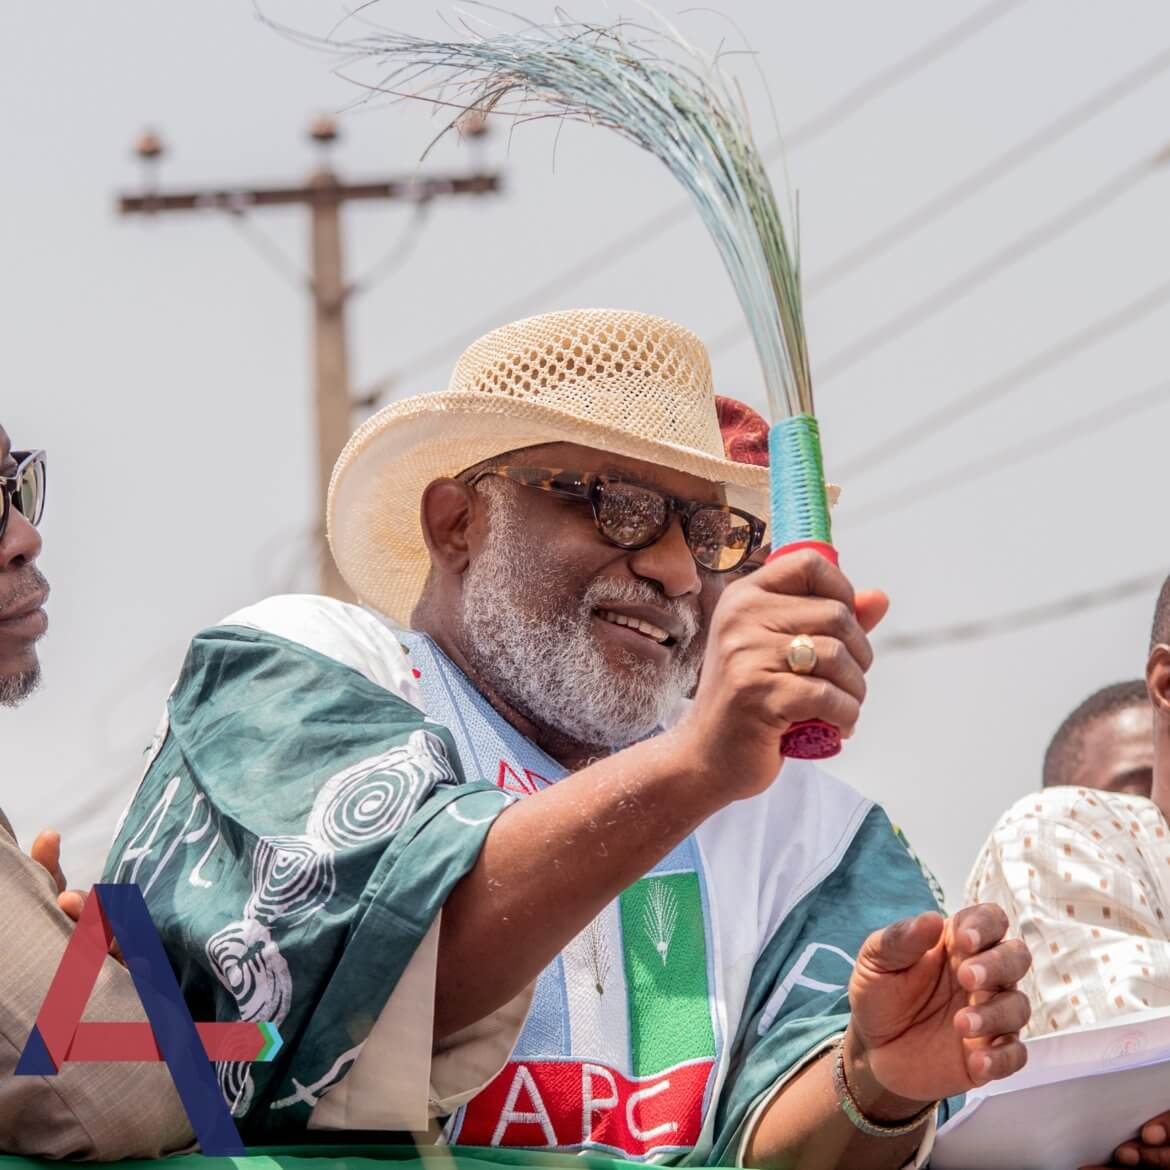 Rotimi-Akeredolu, NWC, APC, Ondo State Governor, Herdsmen Attacks, Kidnappings,